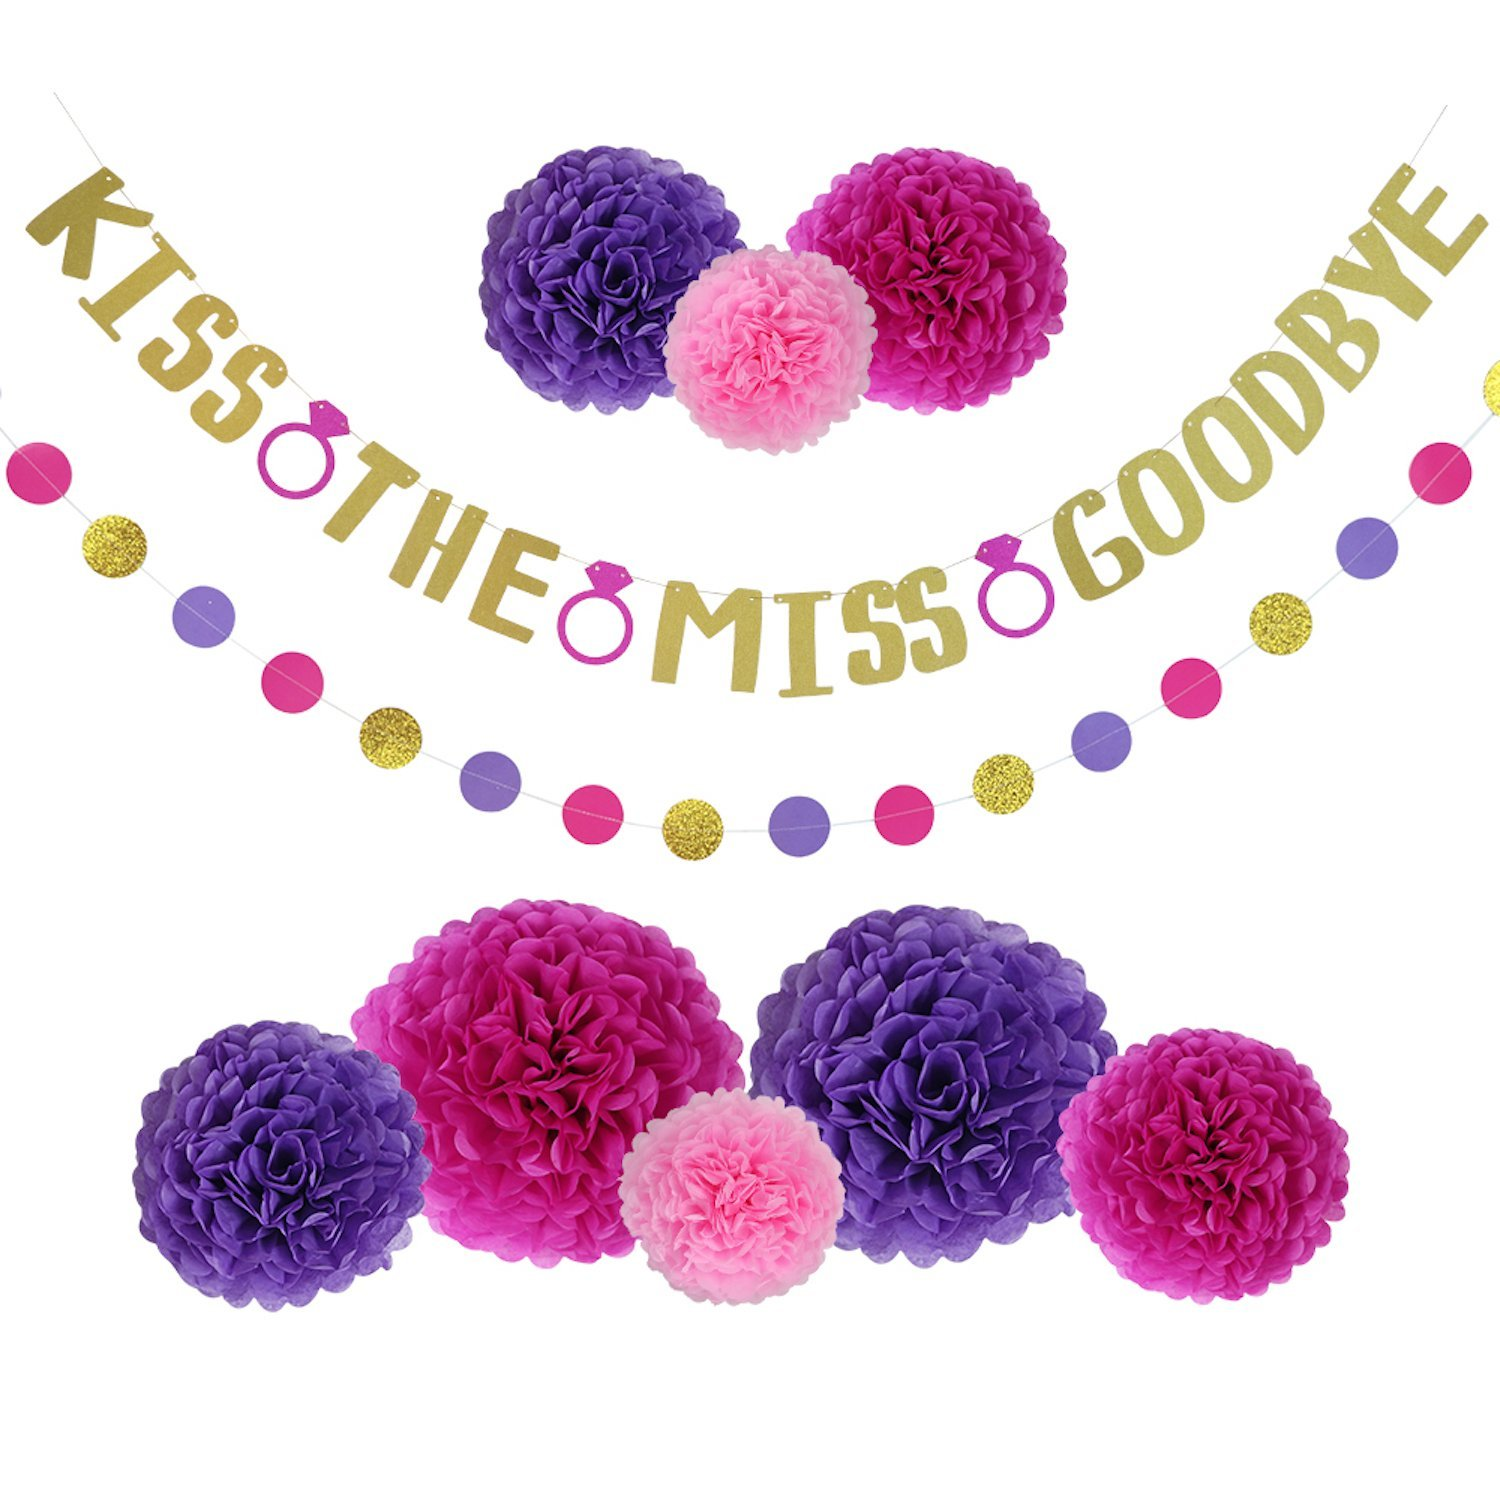 Bachelorette Party Decorations Kit, Bridal Shower Decor, Hen Party Supplies - Gold Glitter Banner w/ Hot Pink Rings, Set of 8 Purple & Pink Pom Poms and Garland